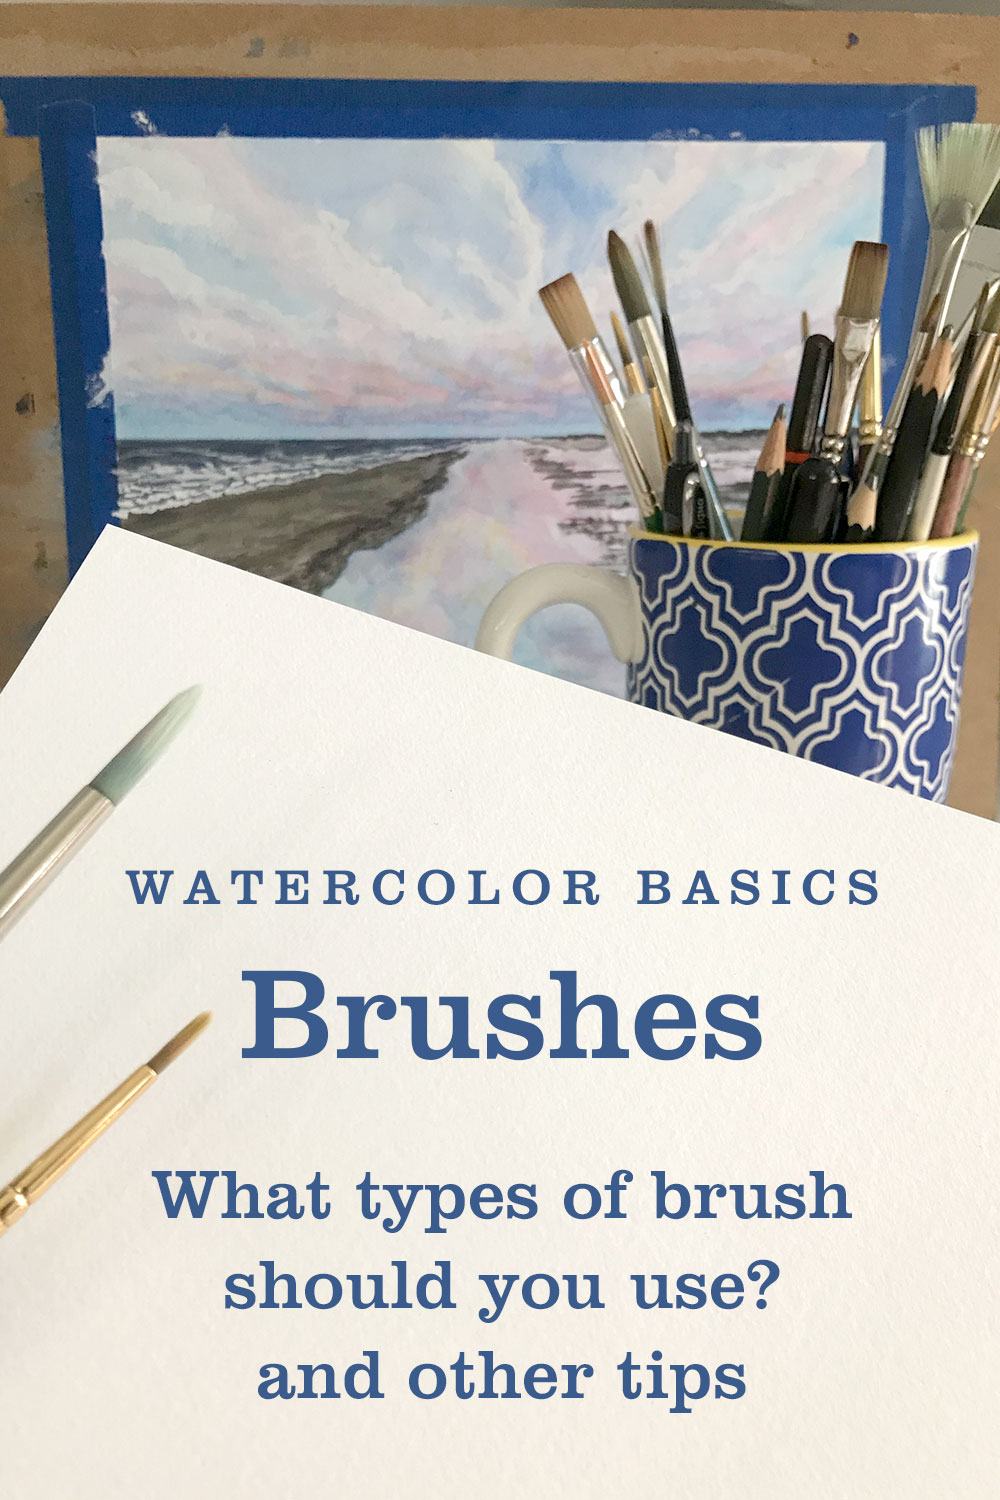 Watercolor Basics - What types of brushes to use